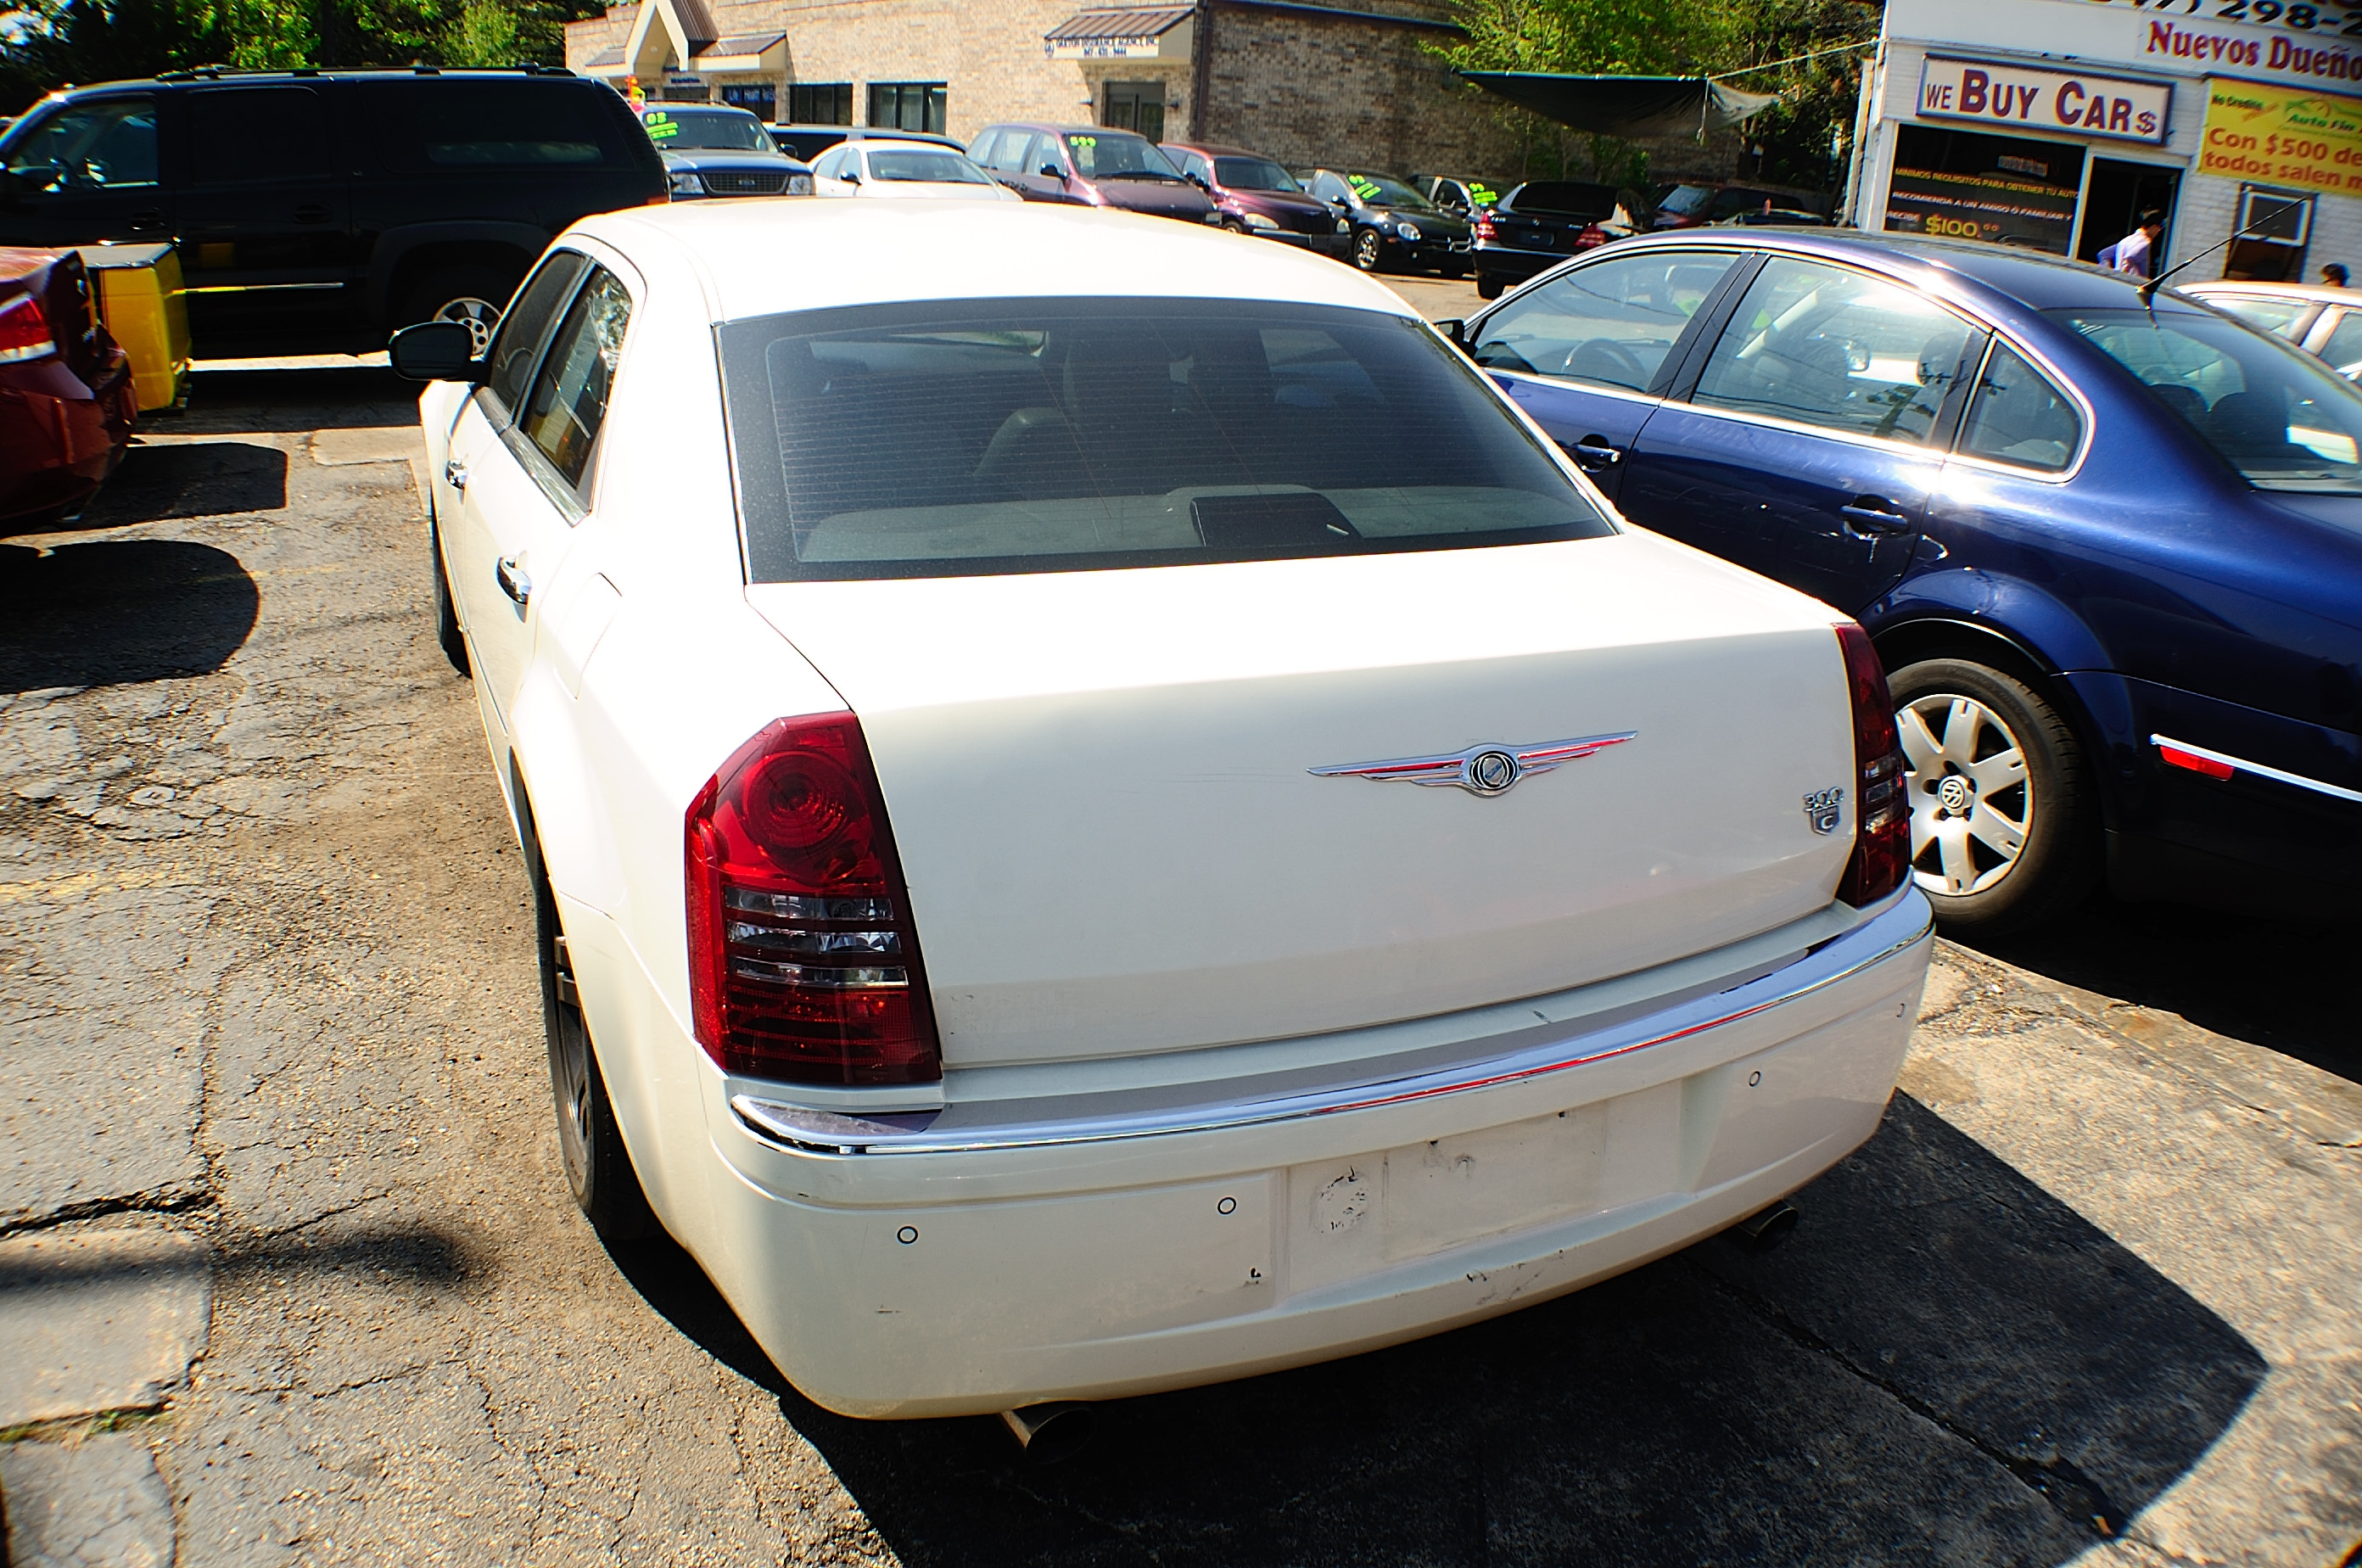 2005 Chrysler 300 White Navigation Used Sedan car sale Gurnee Hanover Park Hoffman Estates Lombard Merrillville